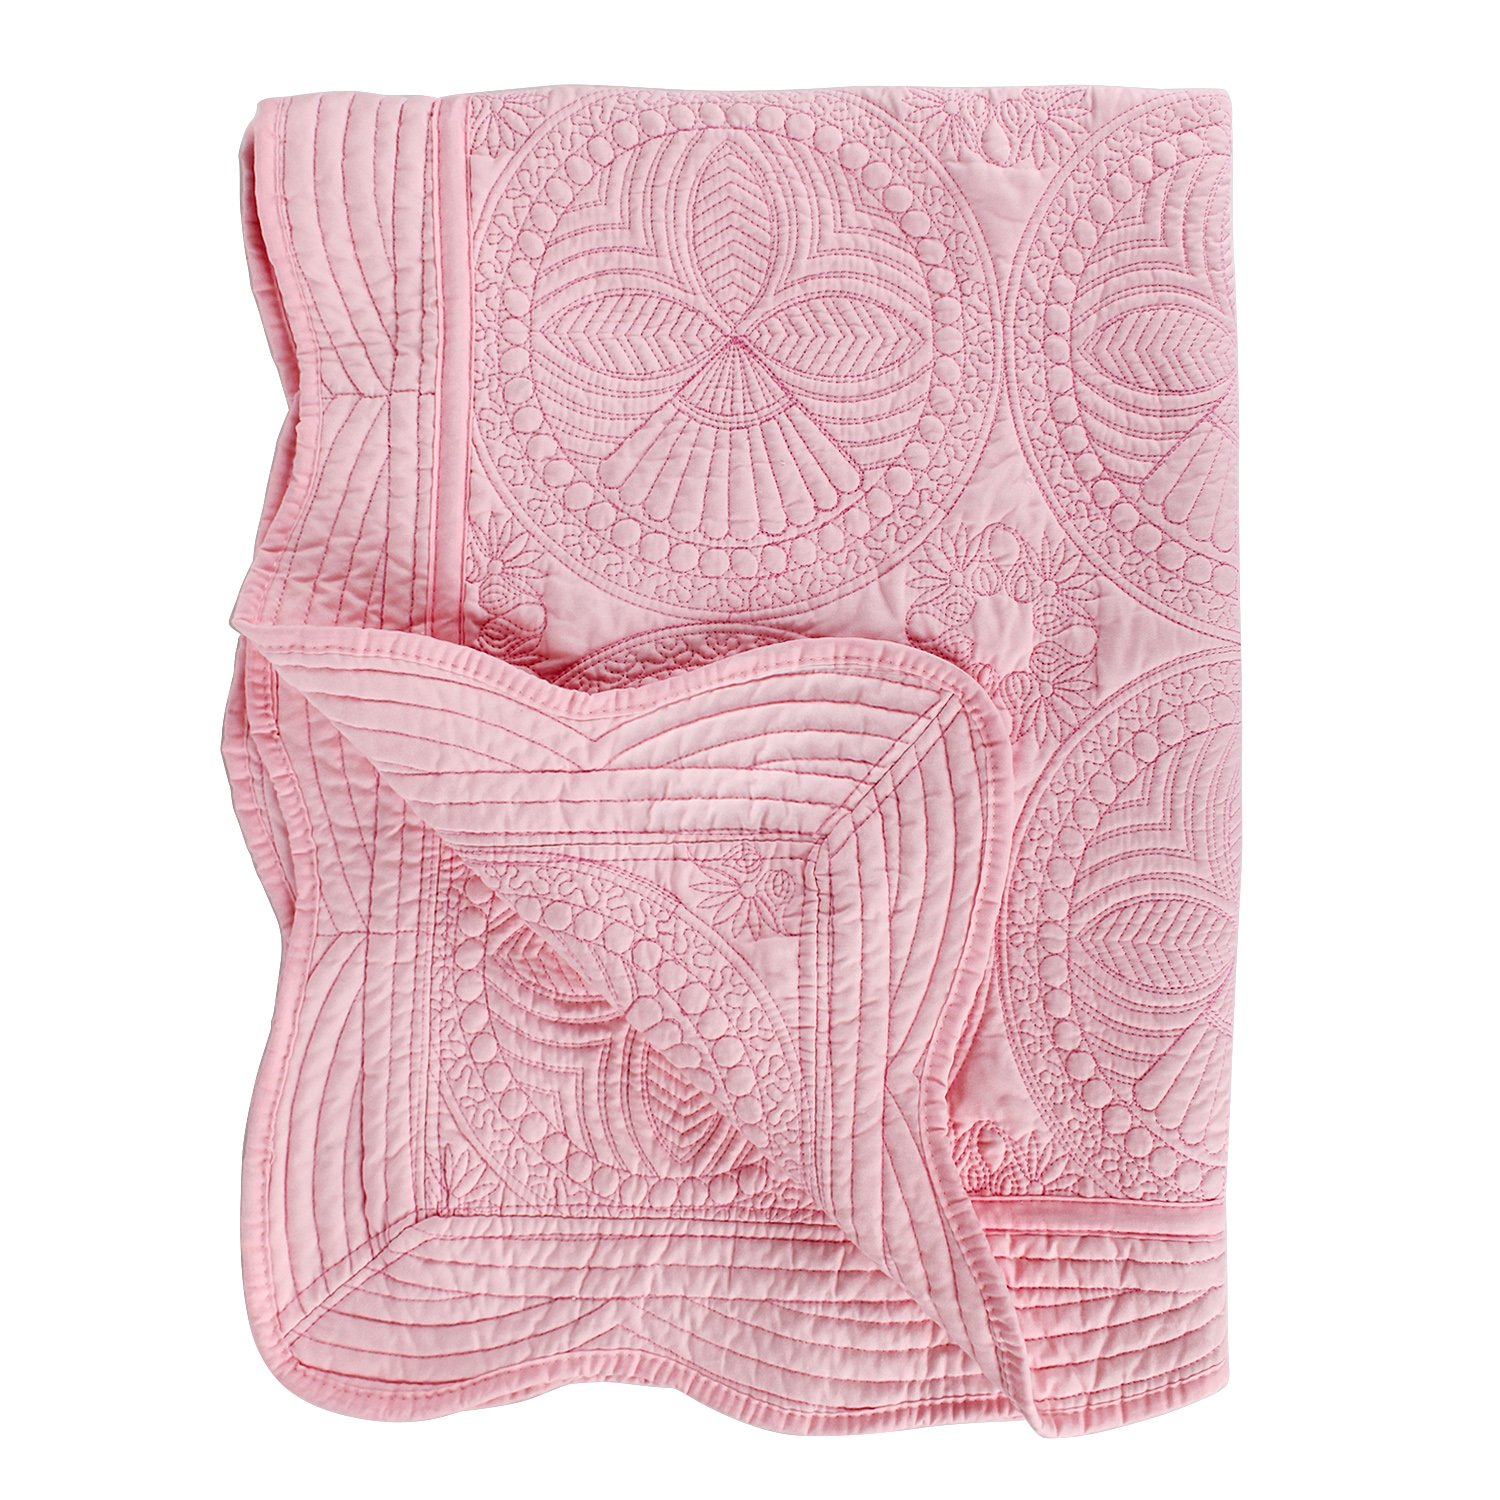 Toddlers and Baby Quilt Lightweight Blanket Embossed Cotton Quilt 4 Seasons Scalloped Newborn Baby Boy/Girl (Pink) by YIQIGO